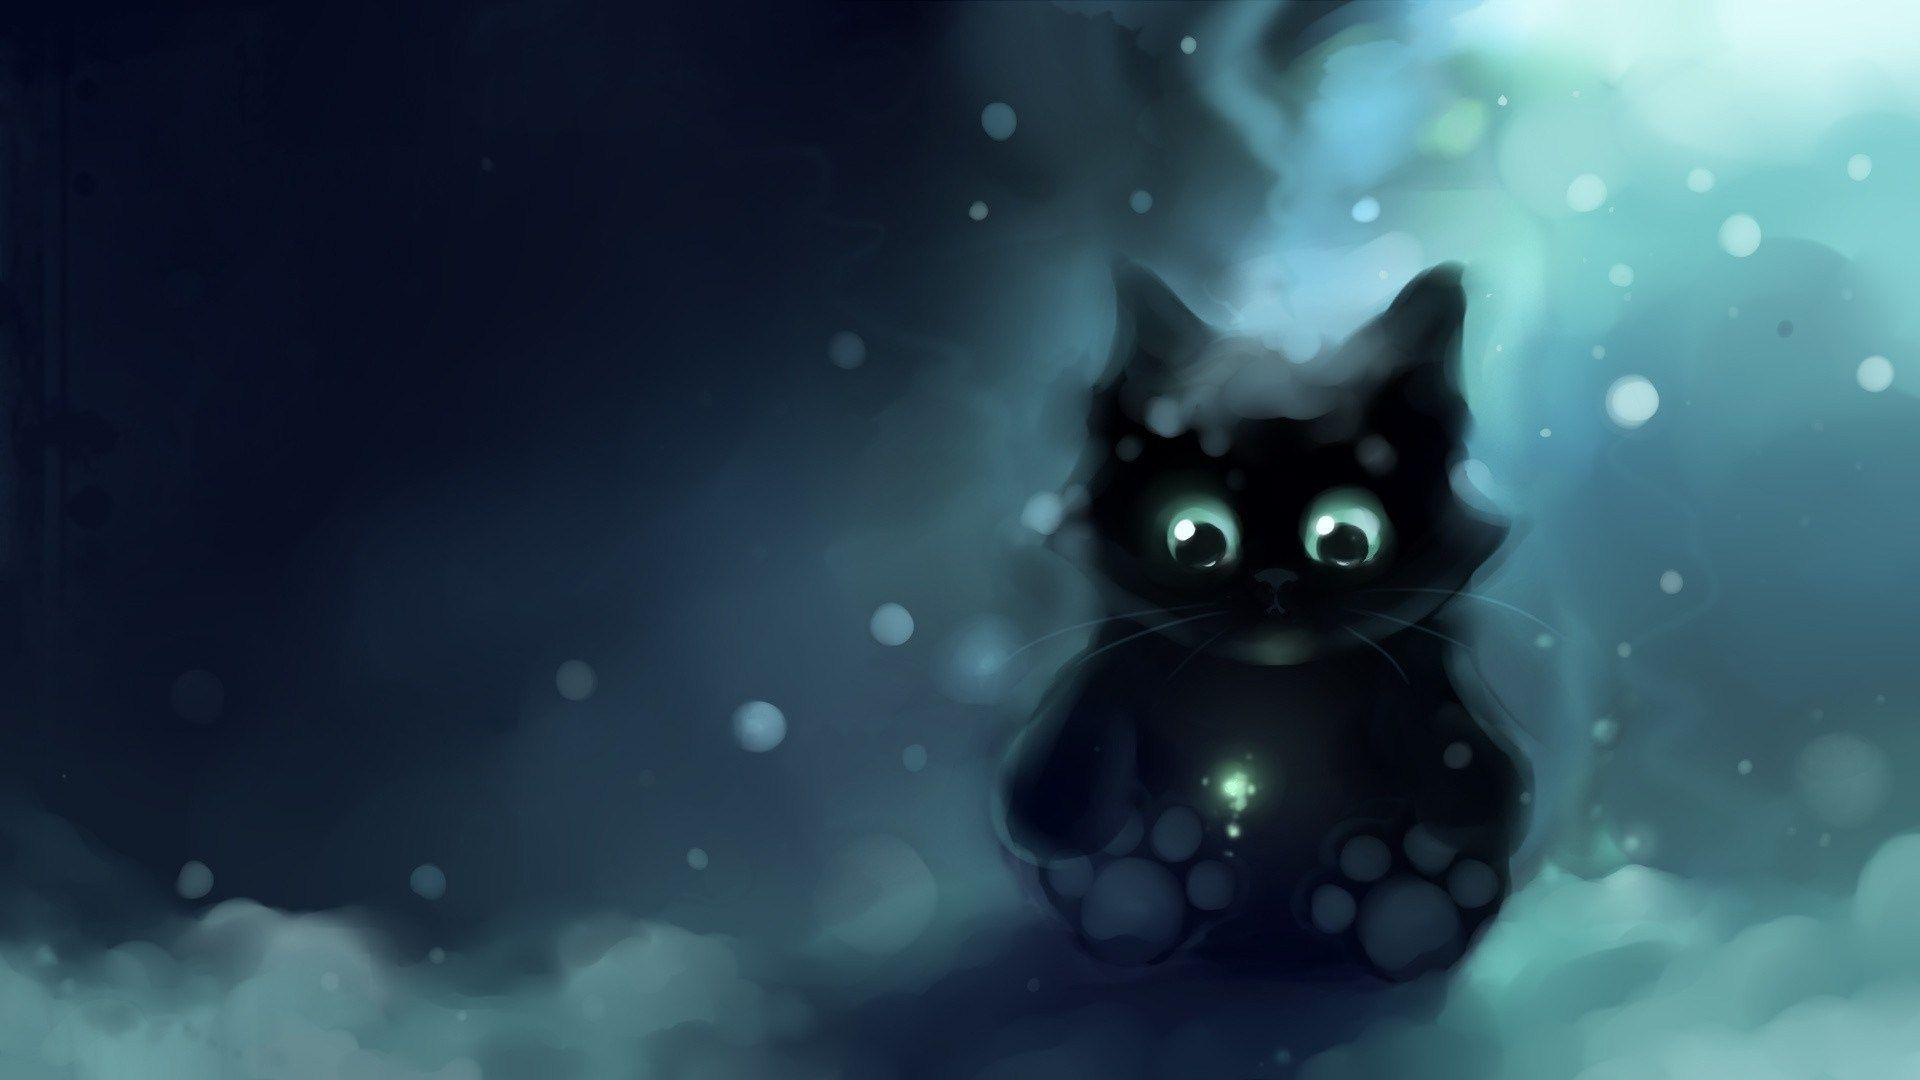 HD Cute Wallpapers - Wallpaper Cave